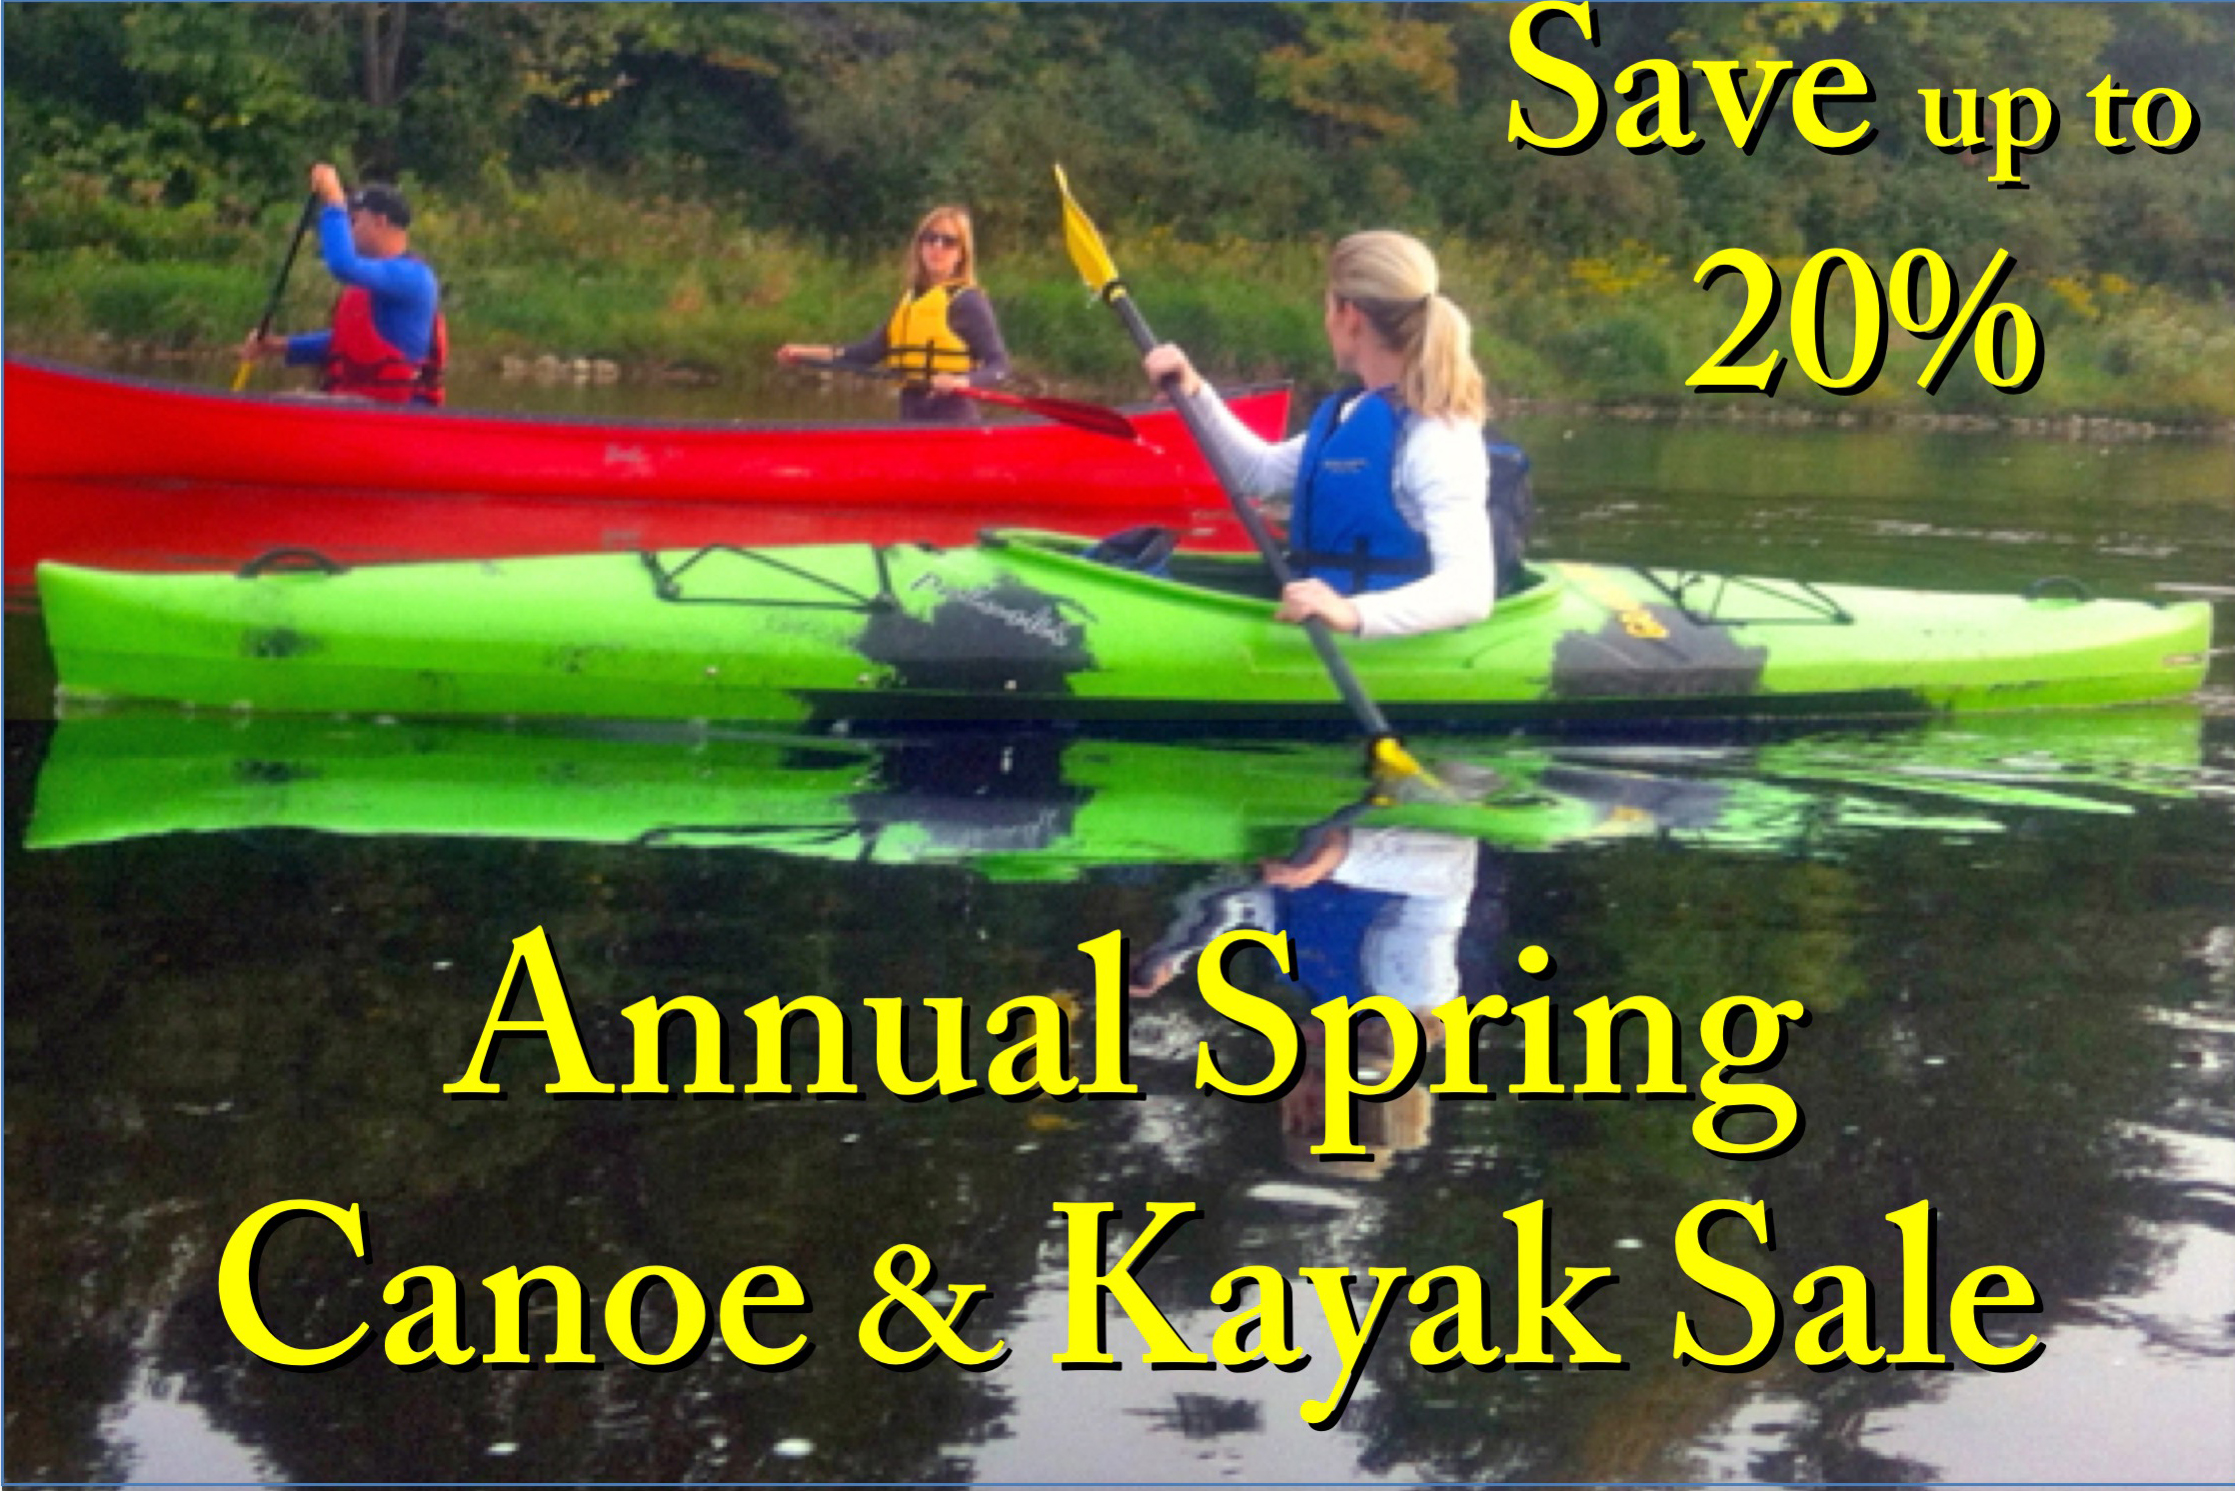 check our Spring Sale on canoes & kayaks